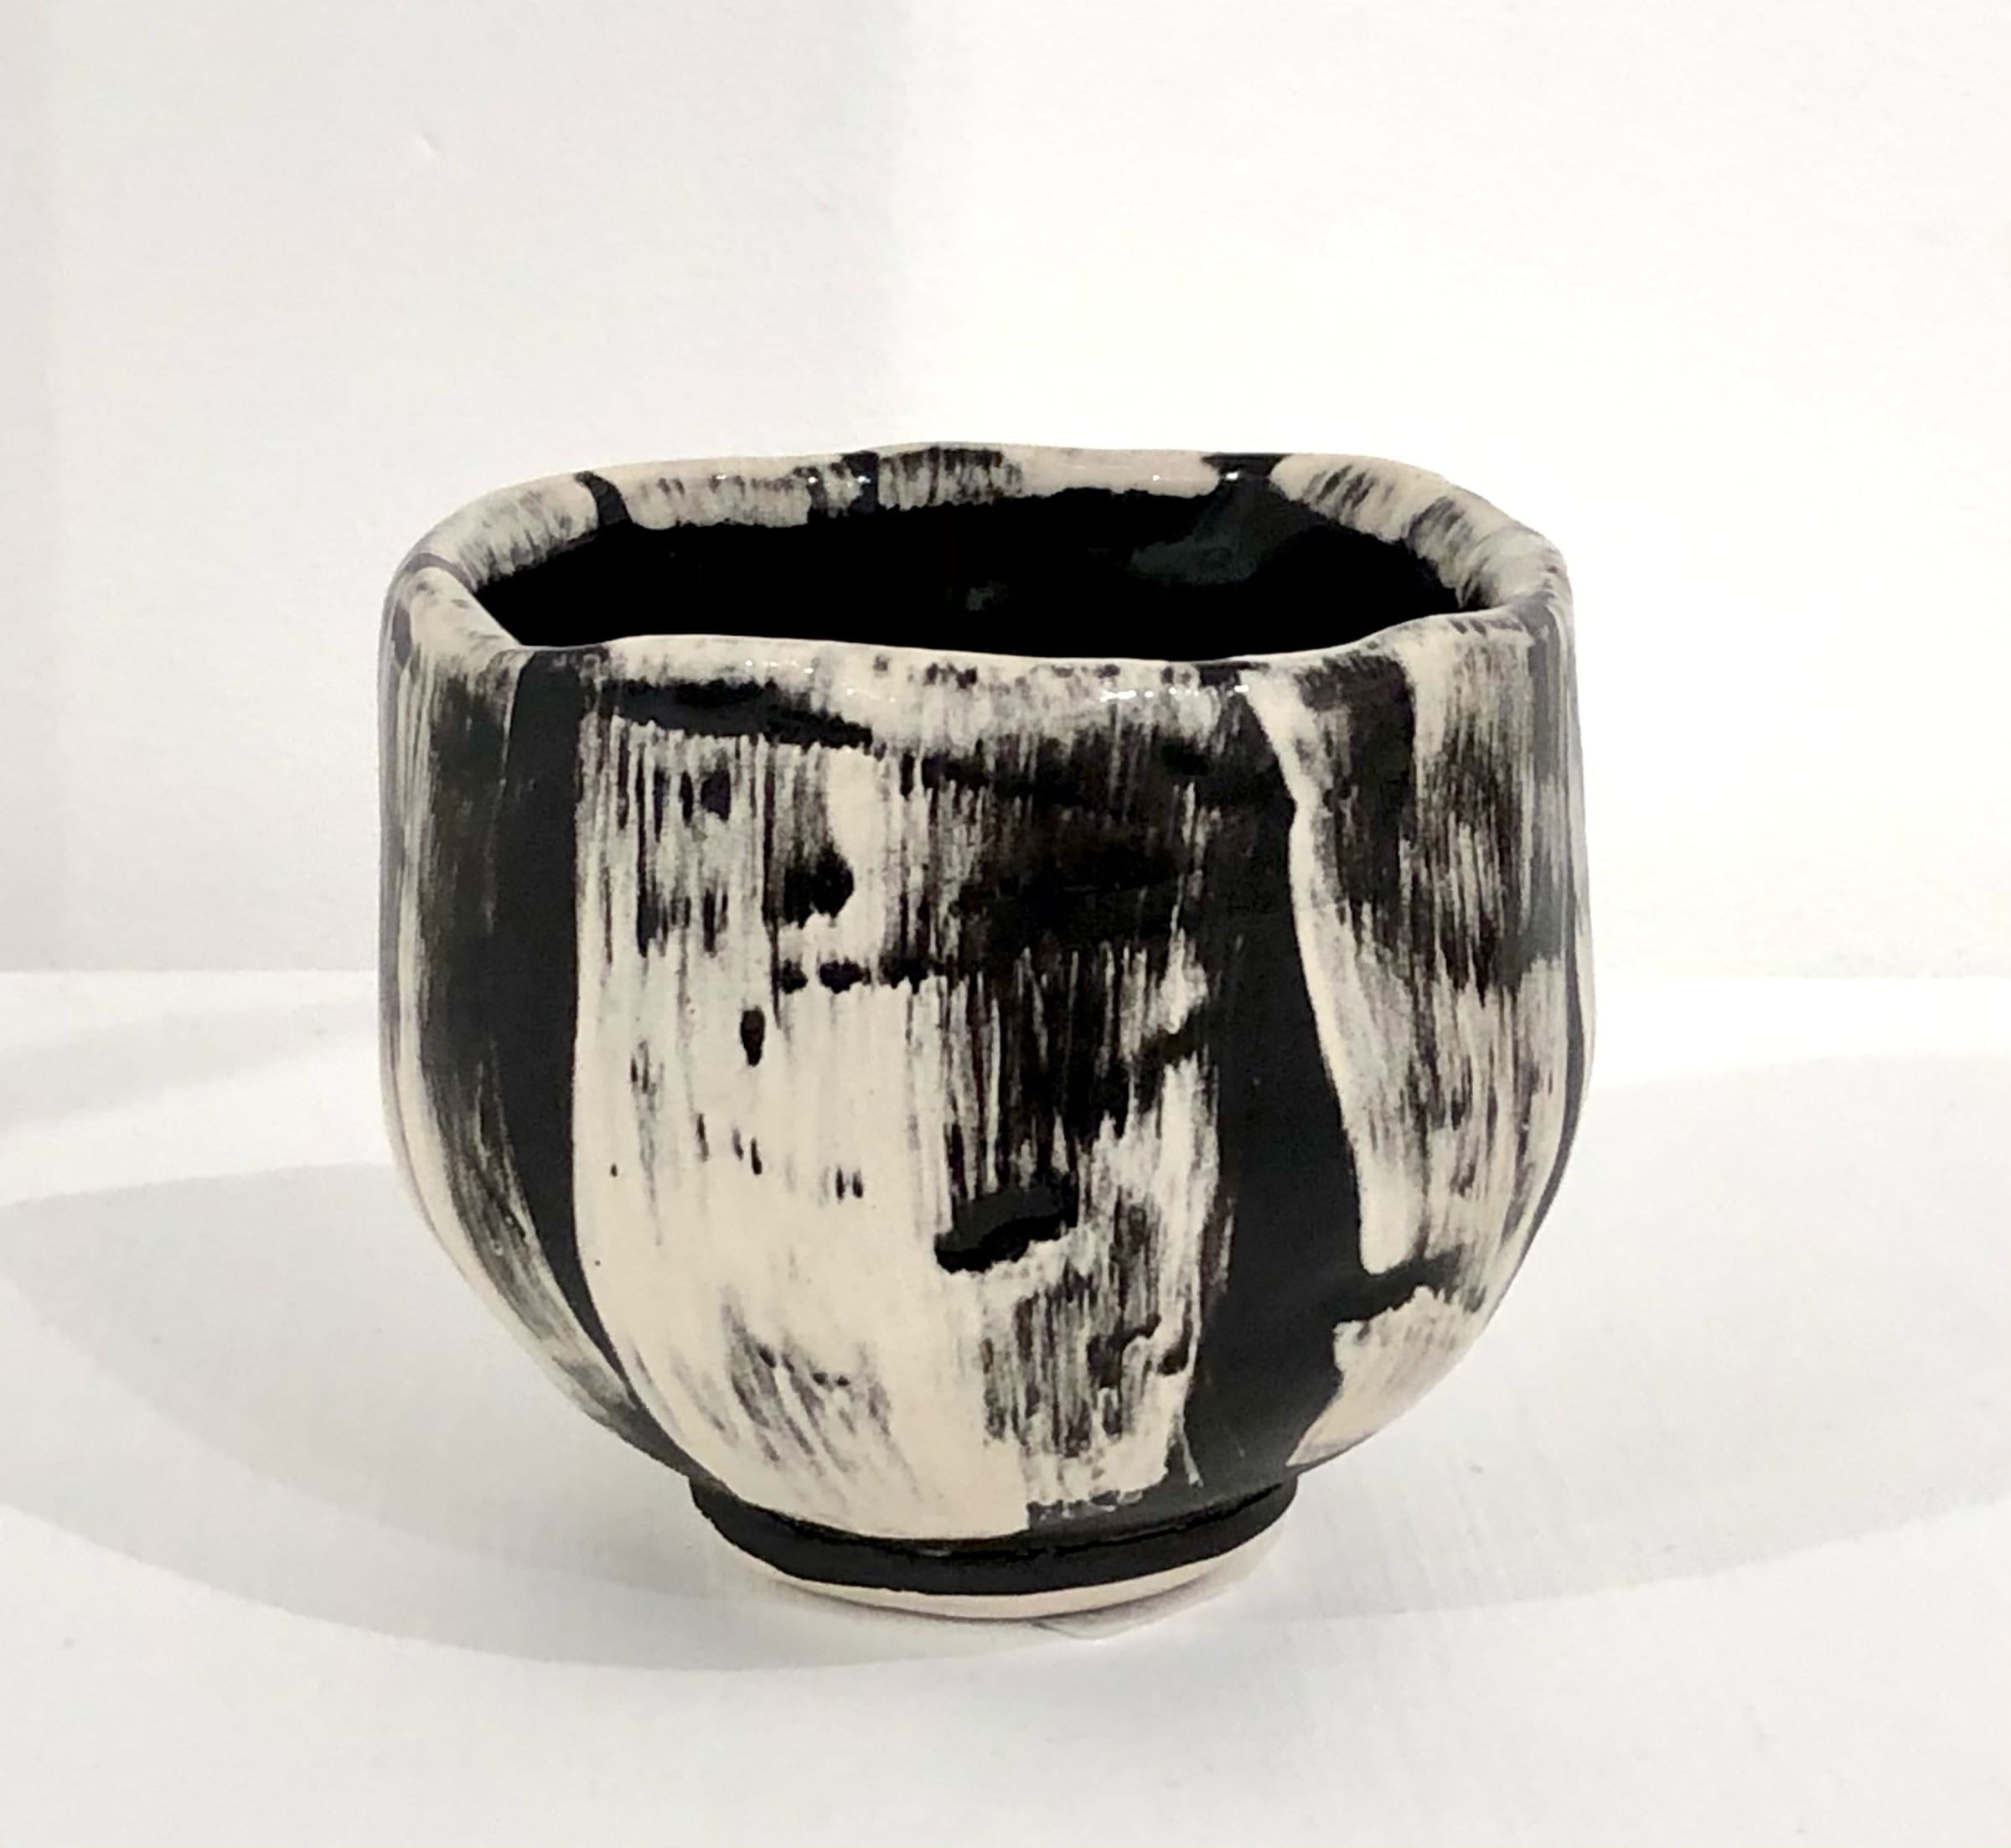 """<span class=""""link fancybox-details-link""""><a href=""""/artists/100-john-pollex/works/7418-john-pollex-tea-bowl-hand-built-2020/"""">View Detail Page</a></span><div class=""""artist""""><strong>John Pollex</strong></div> <div class=""""title""""><em>Tea bowl (hand built)</em>, 2020</div> <div class=""""signed_and_dated"""">impressed with the artist's seal mark 'JP'</div> <div class=""""medium"""">white earthenware decorated with coloured slips</div> <div class=""""dimensions"""">height. 9 cm x diameter. 9.5 cm</div><div class=""""price"""">£88.00</div><div class=""""copyright_line"""">Copyright The Artist</div>"""